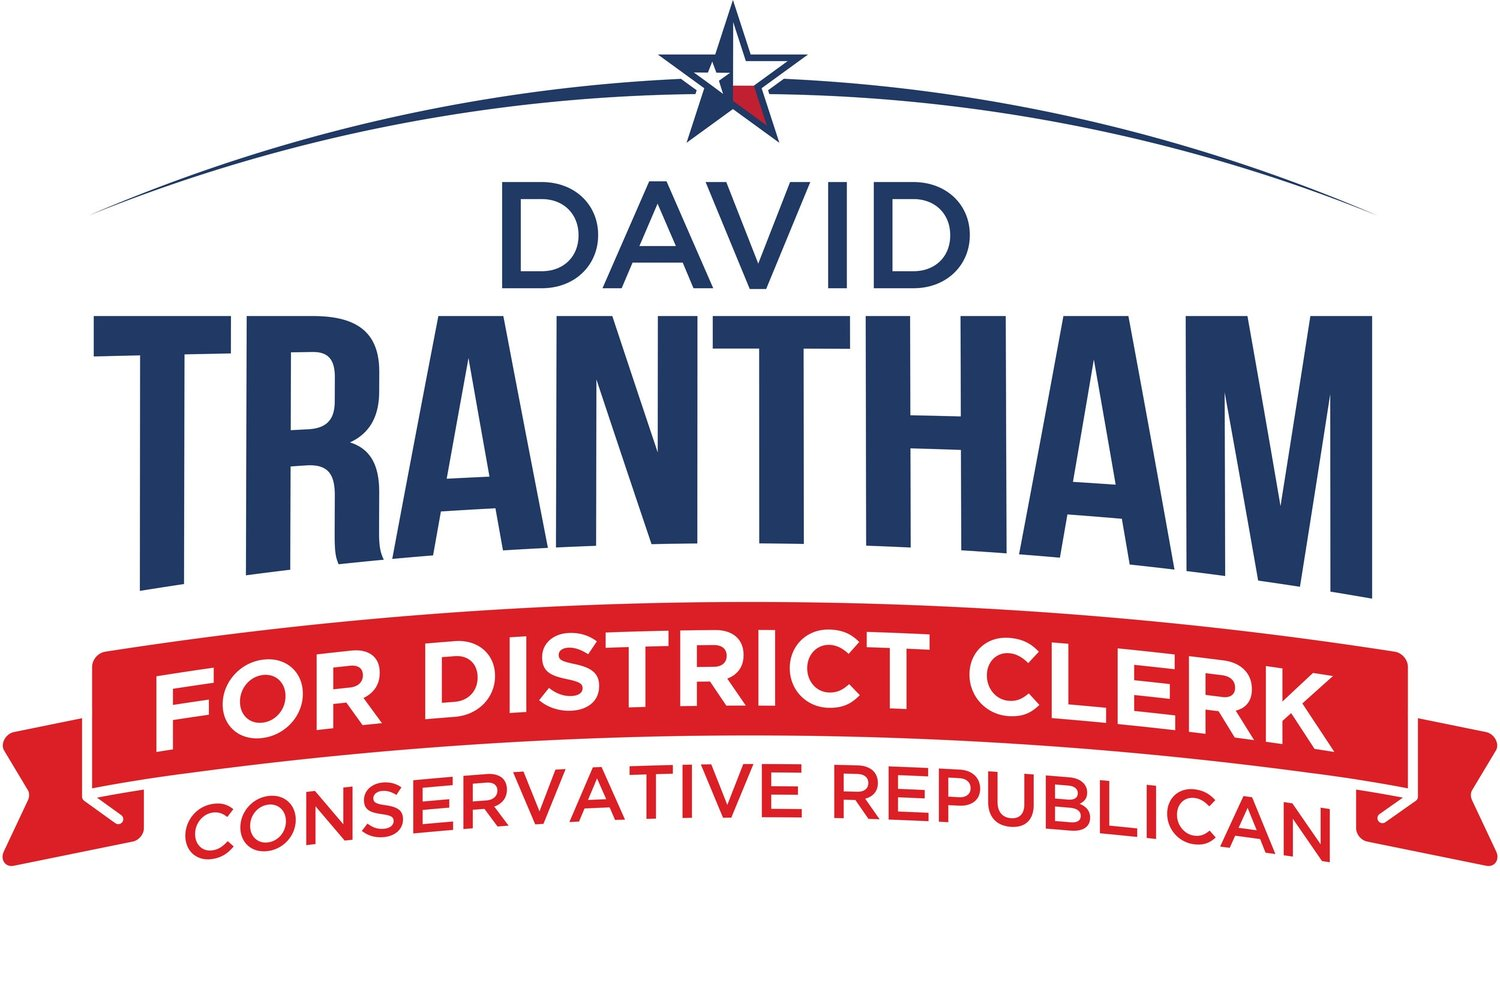 David Trantham for District Clerk